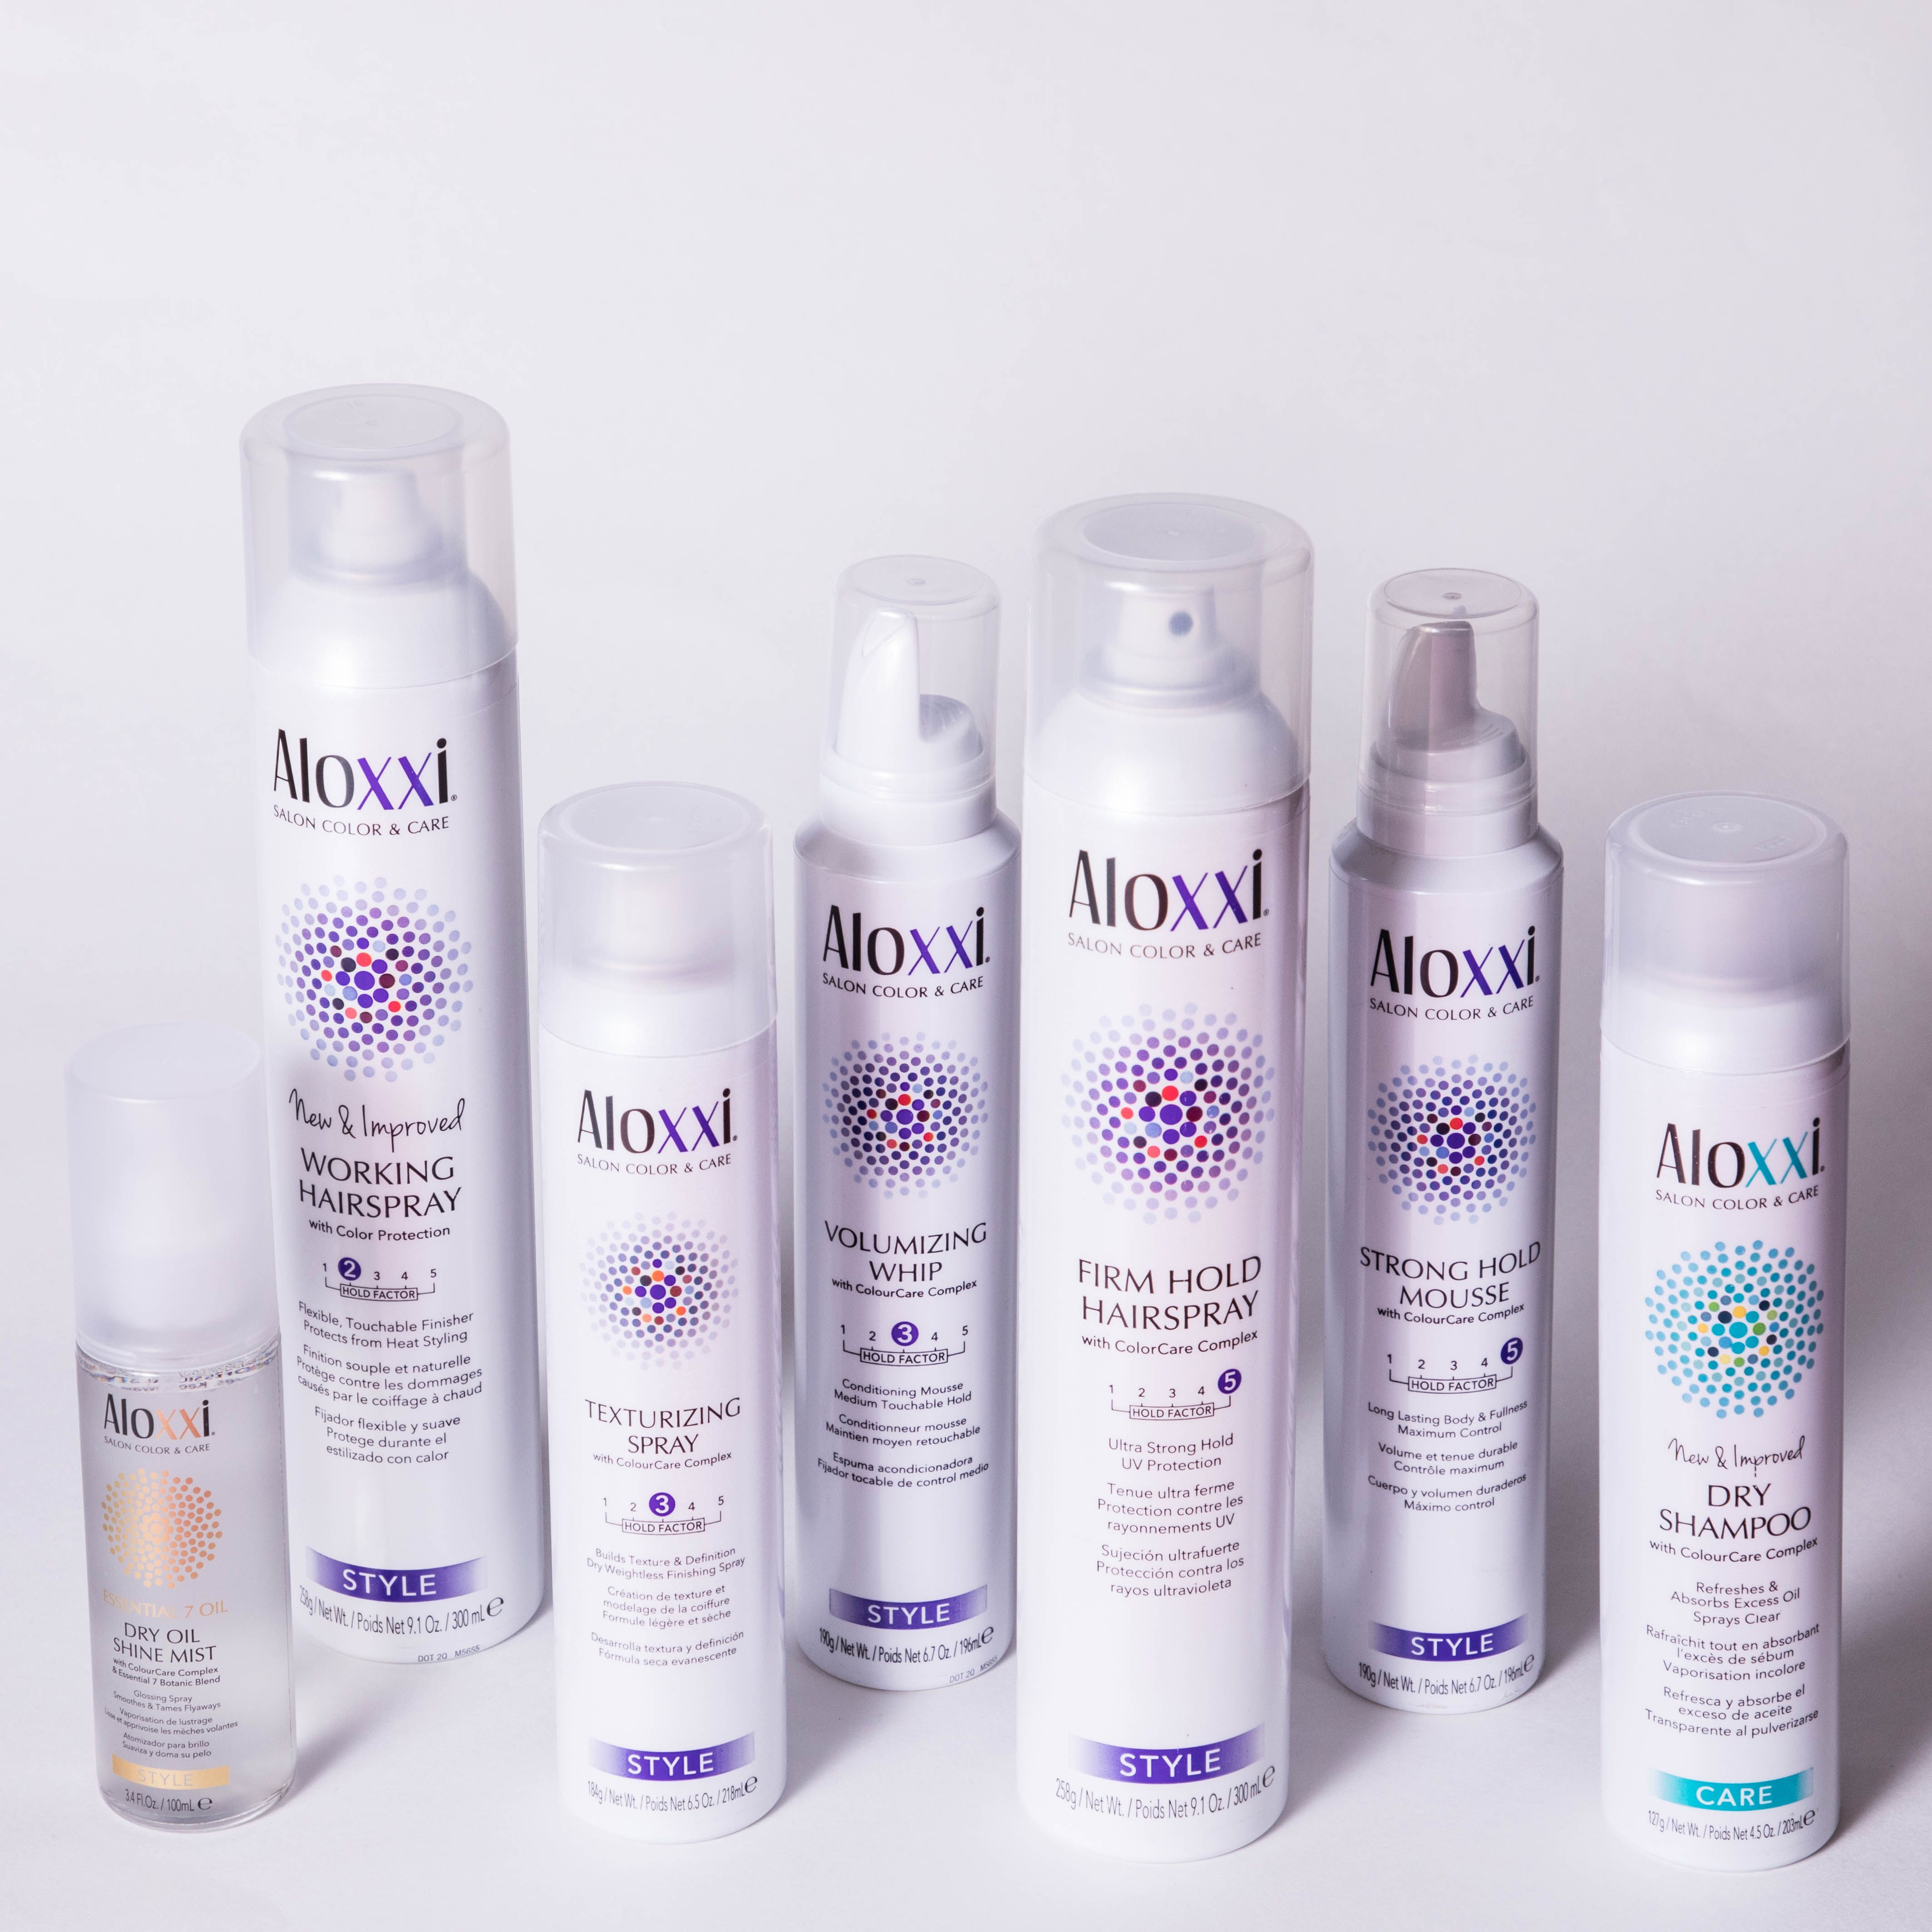 Aloxxi offers a wide range of Salon haircare and color